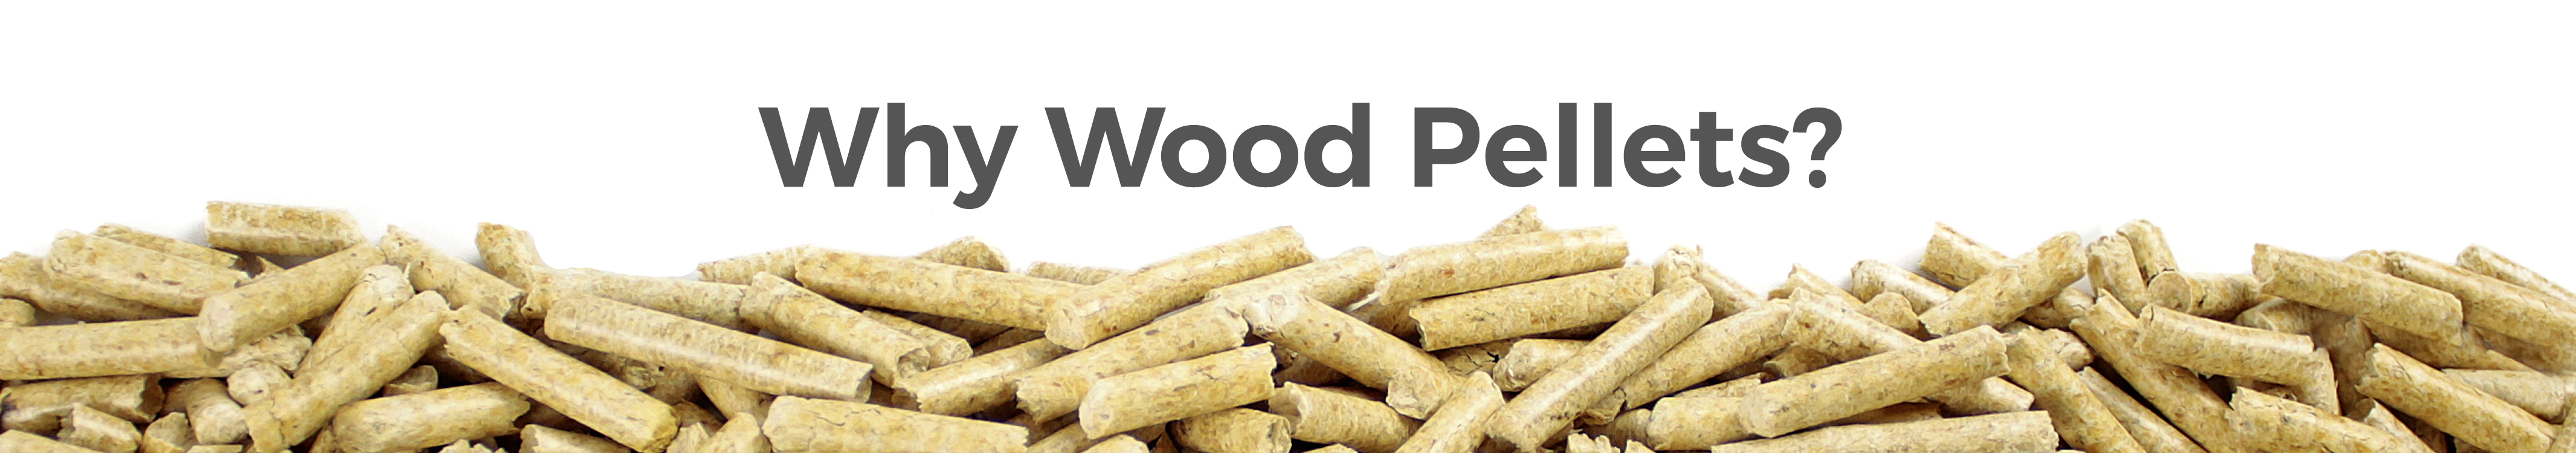 Why Wood Pellets - LacWood Premium Wood Pellets